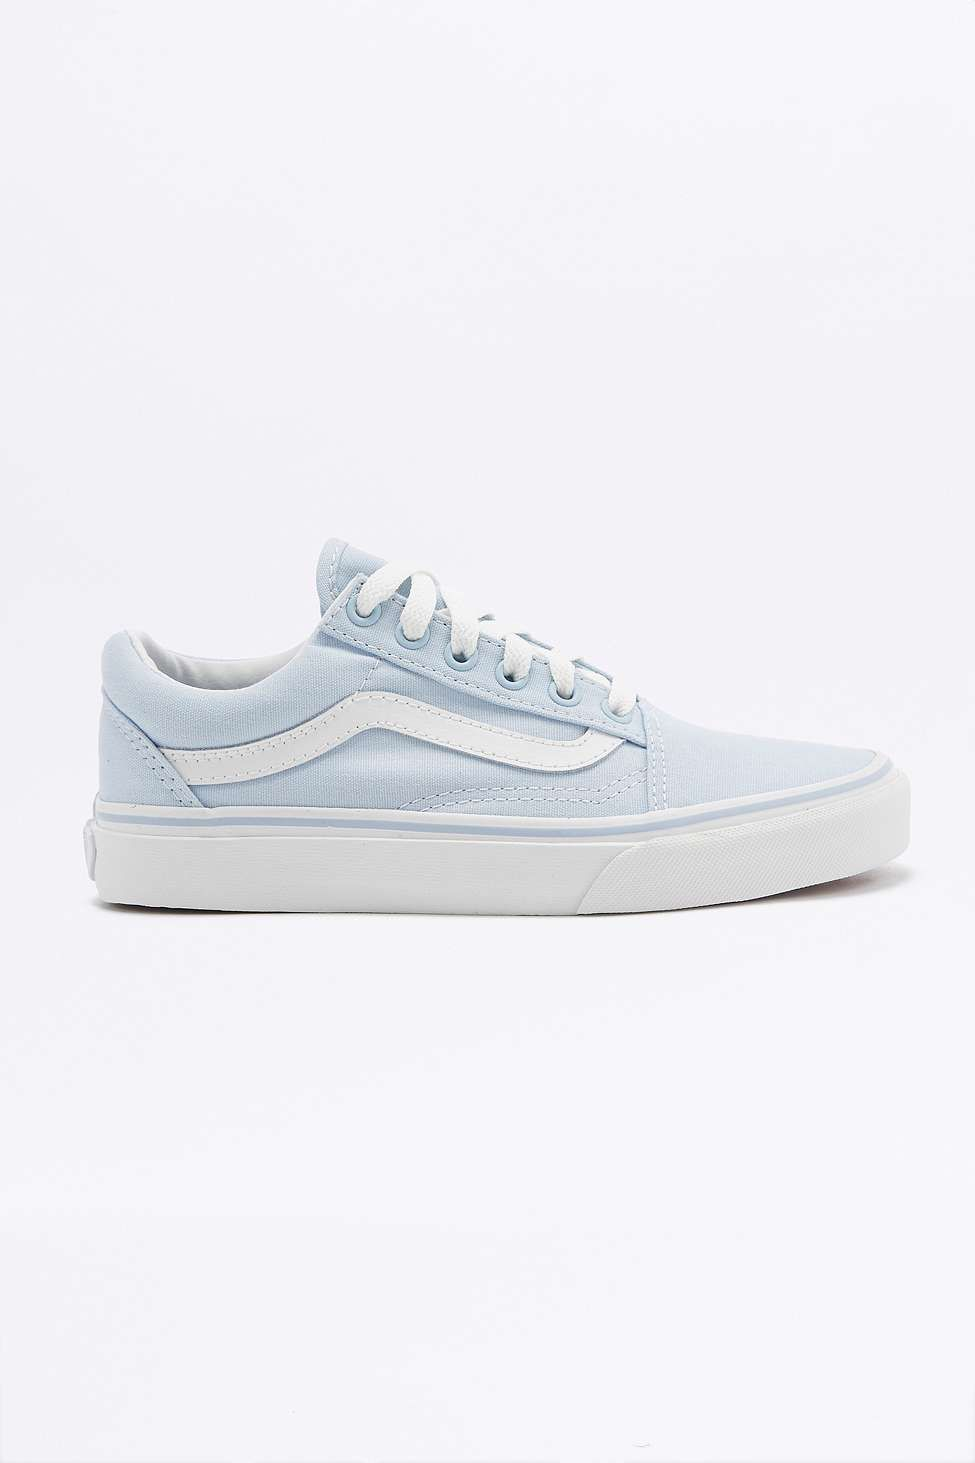 90278629c0595d Vans Old Skool Baby Blue Trainers